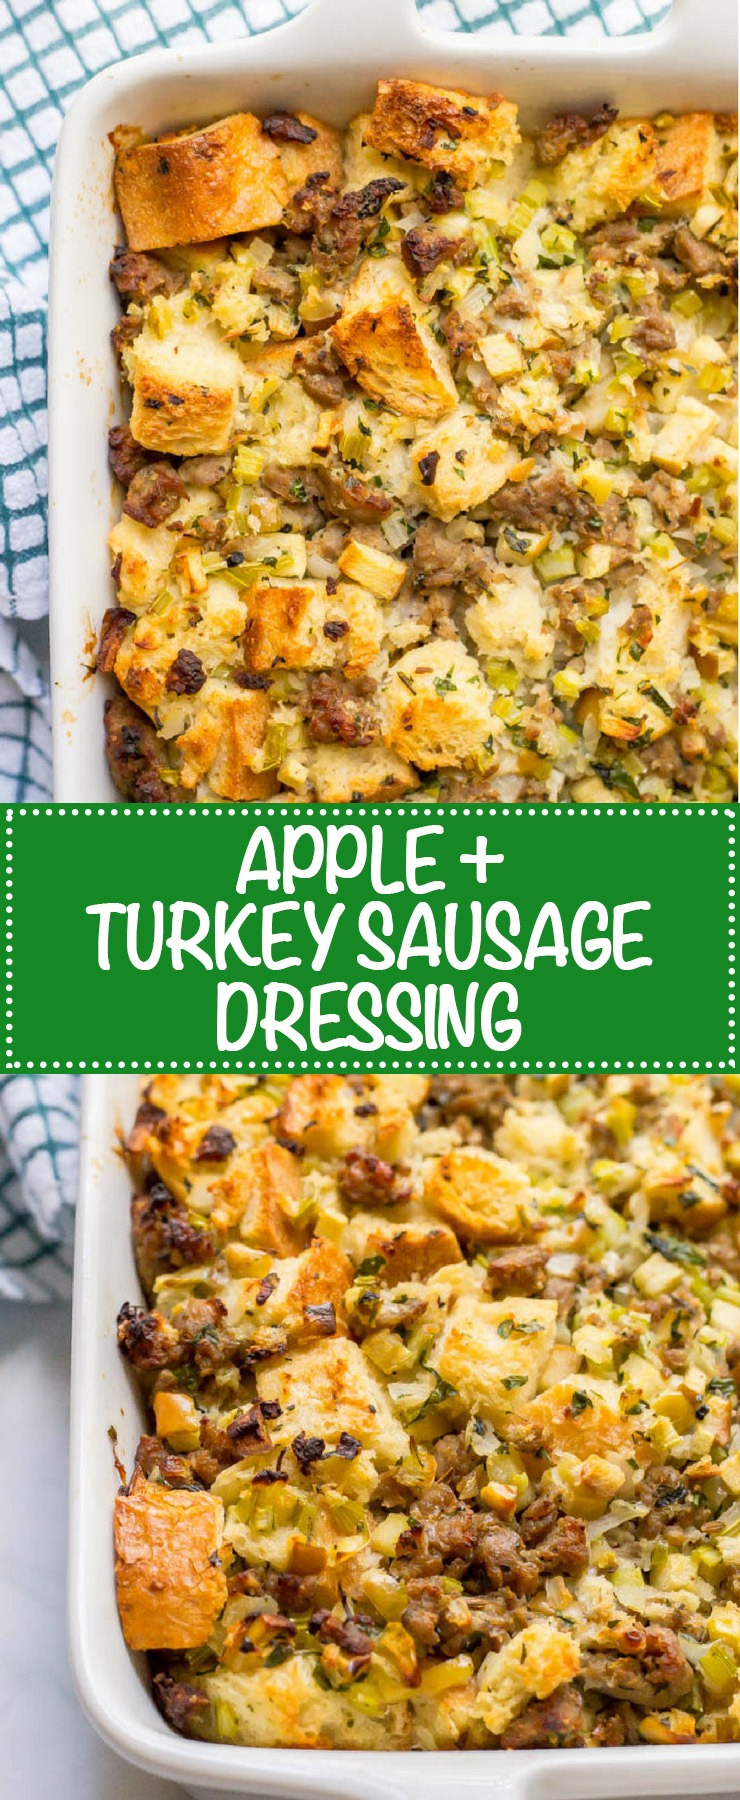 Turkey sausage and apple dressing is an easy, hearty and delicious side dish made with fresh ingredients. It can be prepped ahead and comes out so delicious - perfect for Thanksgiving! #Thanksgiving #Thanksgivingfood #Thanksgivingtable #holidayfood